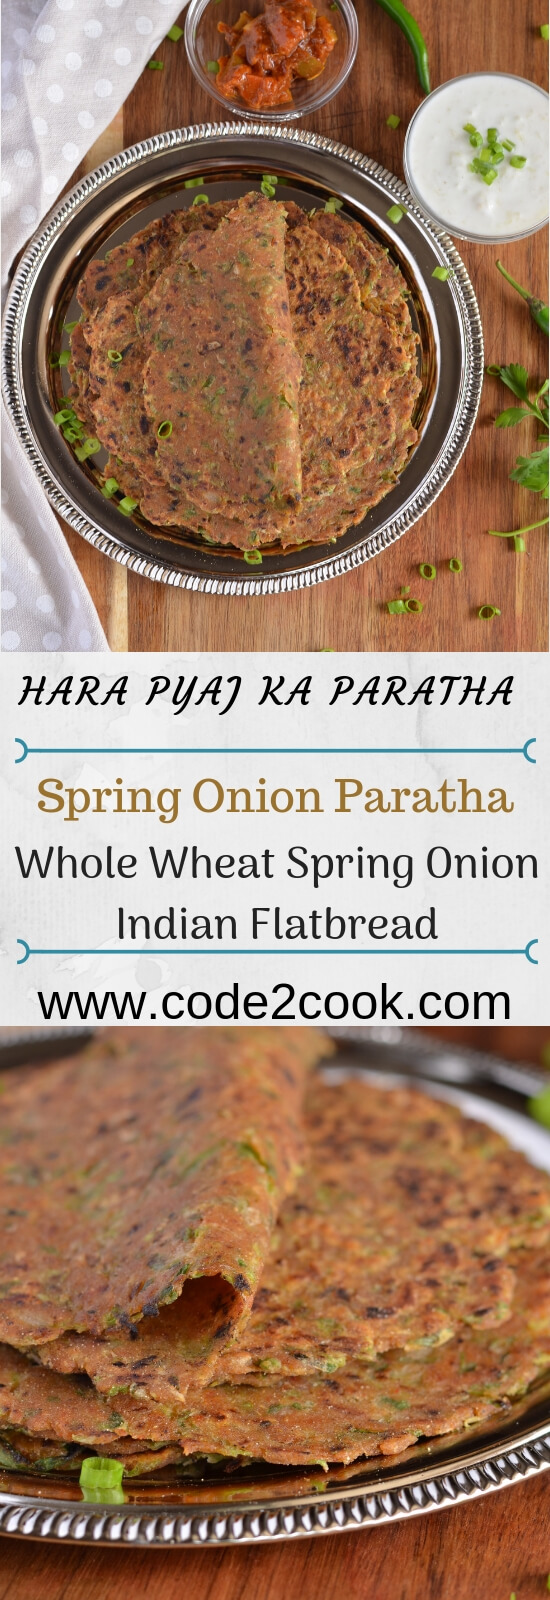 Hara pyaz ka paratha or spring onion paratha is another Indian flatbread recipe where vegetables and spices kneaded along with the whole wheat flour. Such parathas are easy to make, very quick process when compare to stuff parathas, and the best part is kids love these. Another breakfast option which is suitable for a kid's lunchbox too.